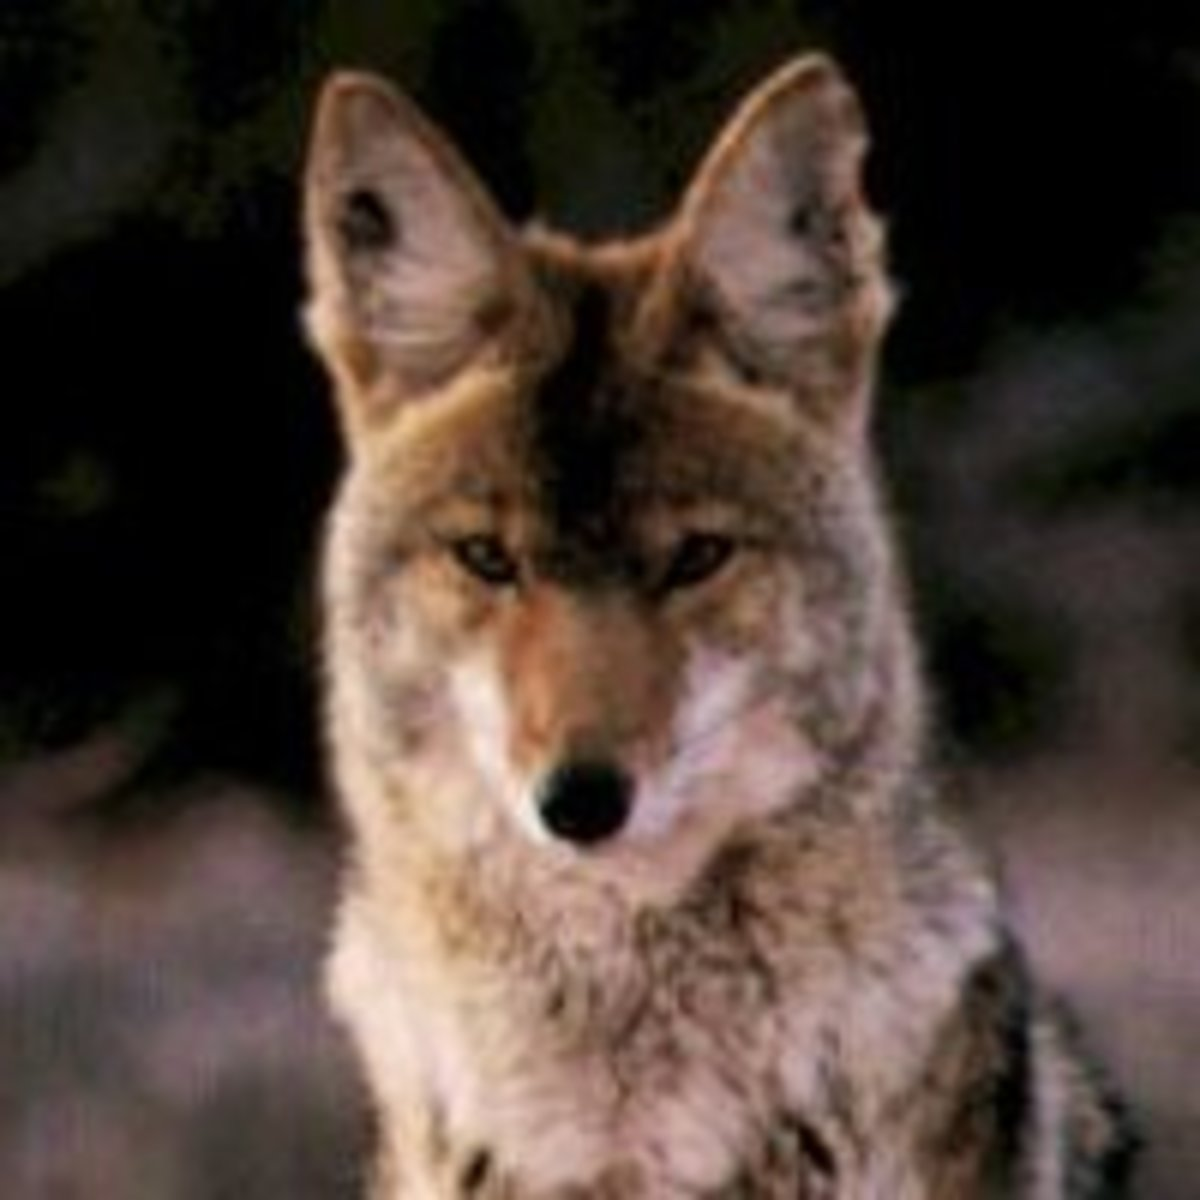 The coyote replaces the bear in a hunting directional set.  he can be a great teacher showing us how our impulsive nature or our self-centeredness fail to serve us well